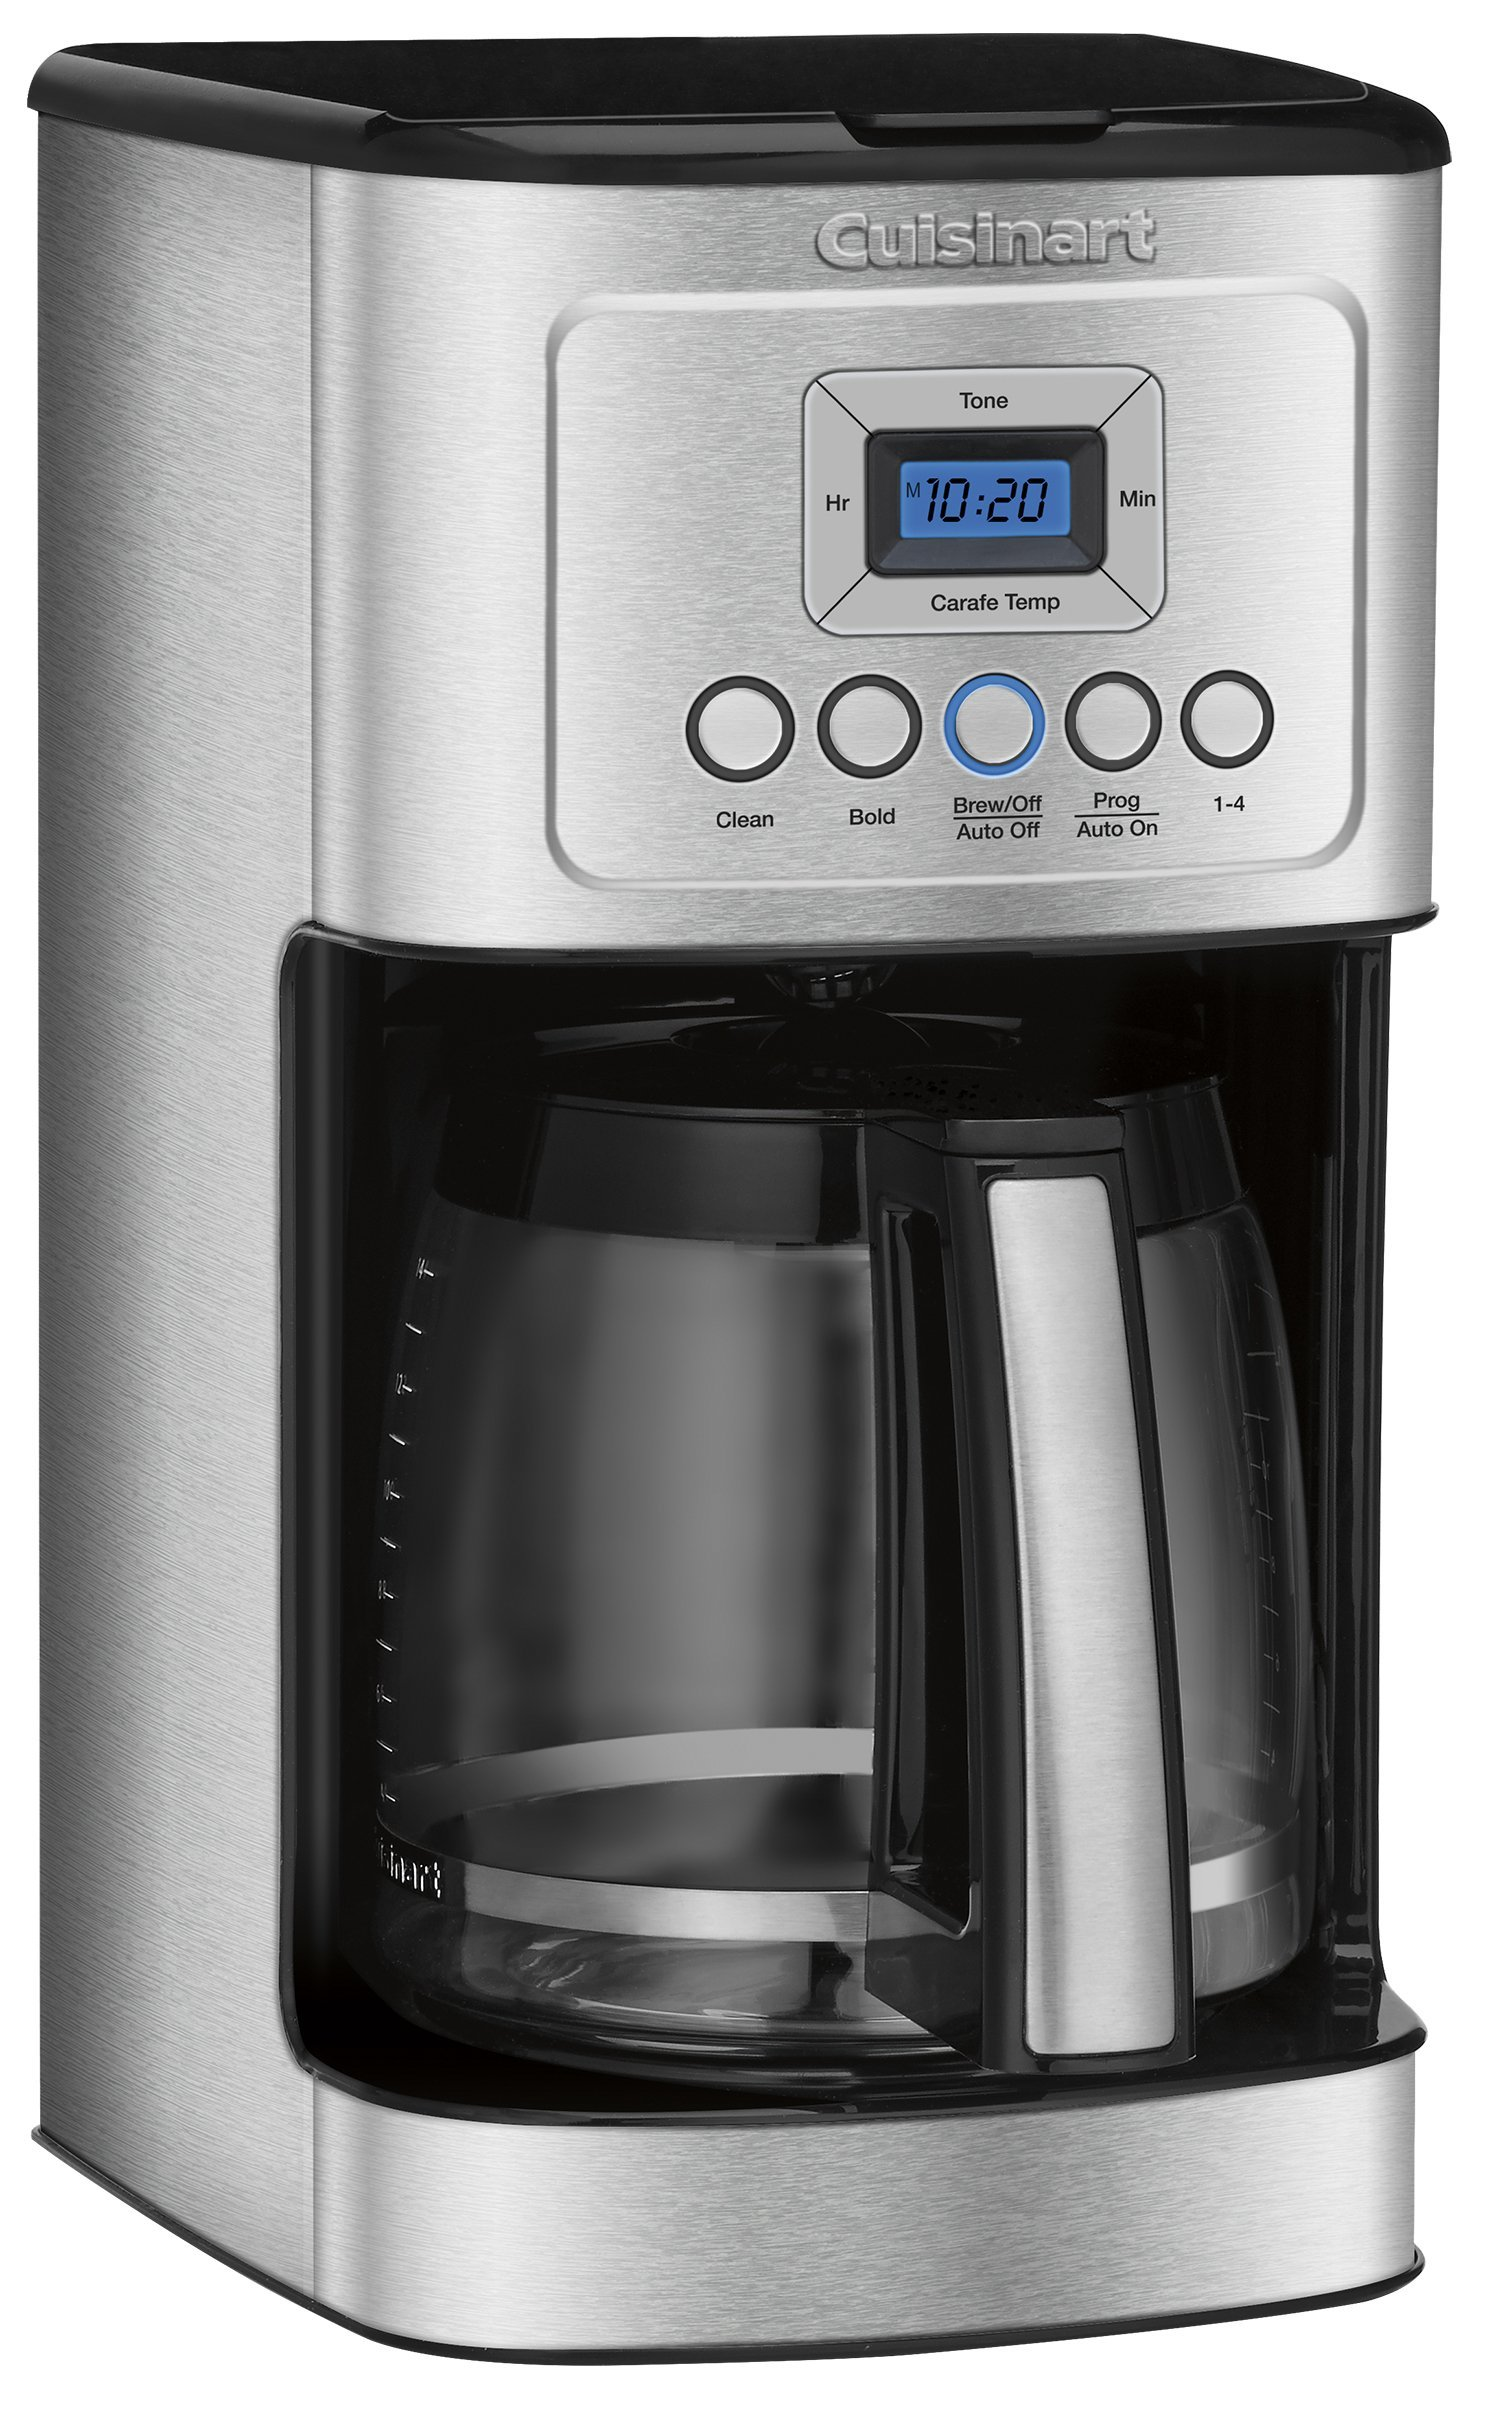 Cuisinart DCC-3200 PerfecTemp Programmable Coffeemaker, 14 Cup, Stainless Steel/Black by Cuisinart (Image #2)